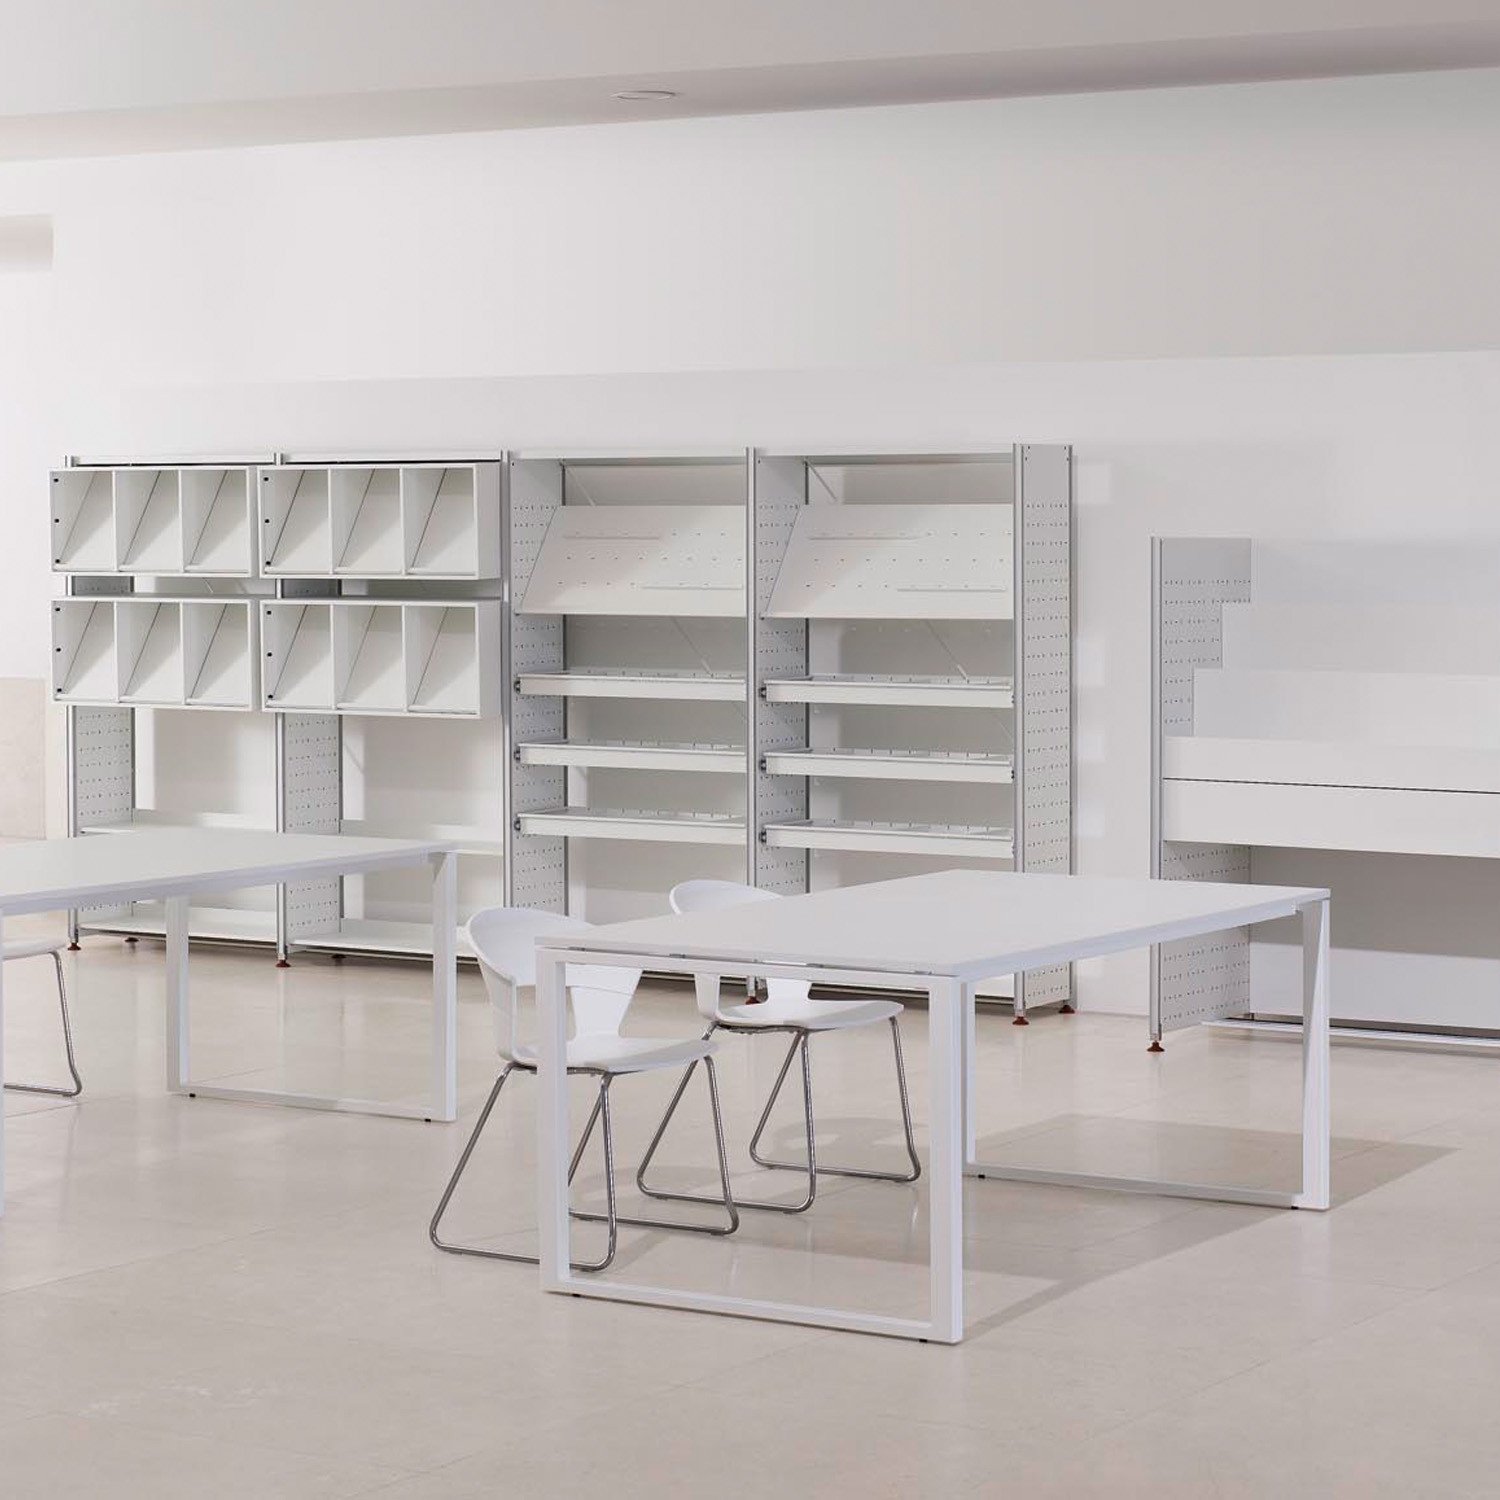 Marciana Display Shelving